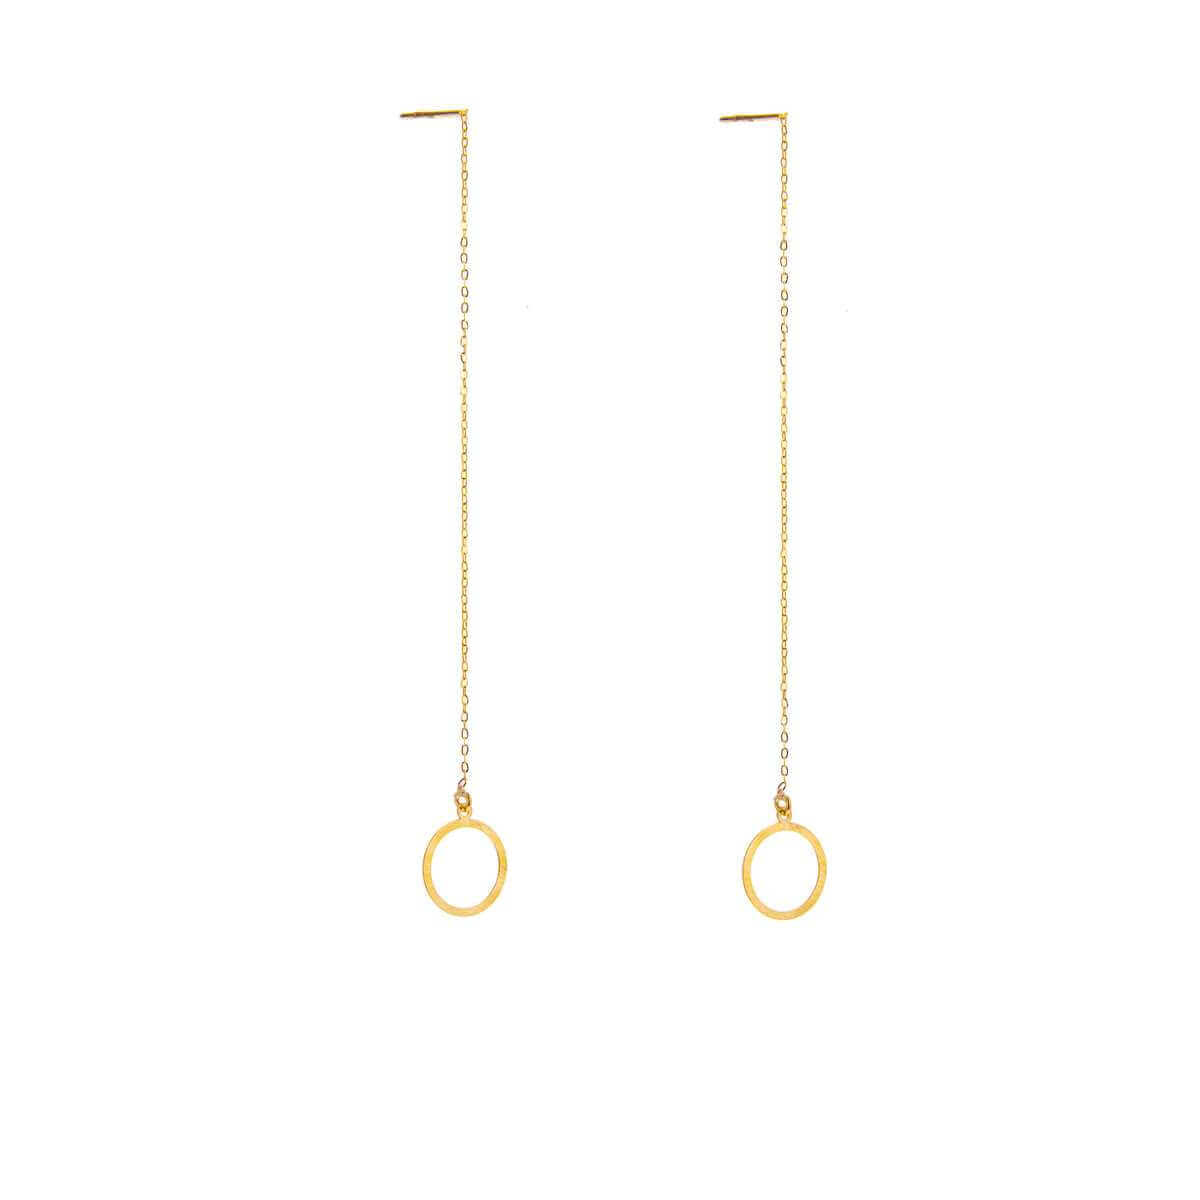 9ct Gold Karma Circle Pull Through Earrings